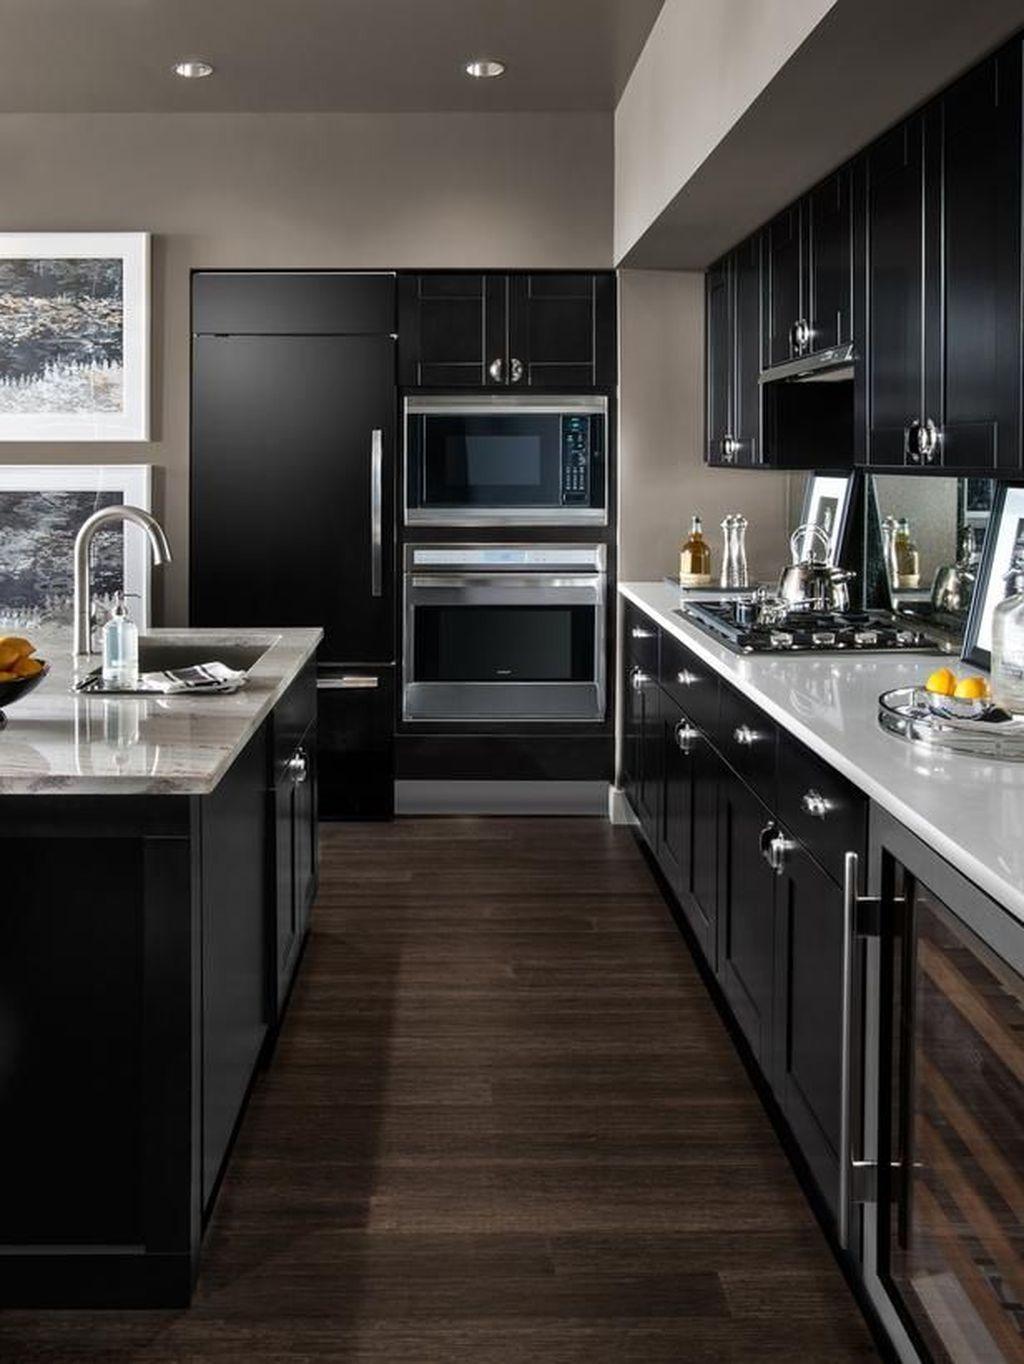 Nice 30 Popular Kitchen Color Scheme Ideas For Dark Cabinets Small Modern Kitchens Kitchen Design Small Interior Design Kitchen